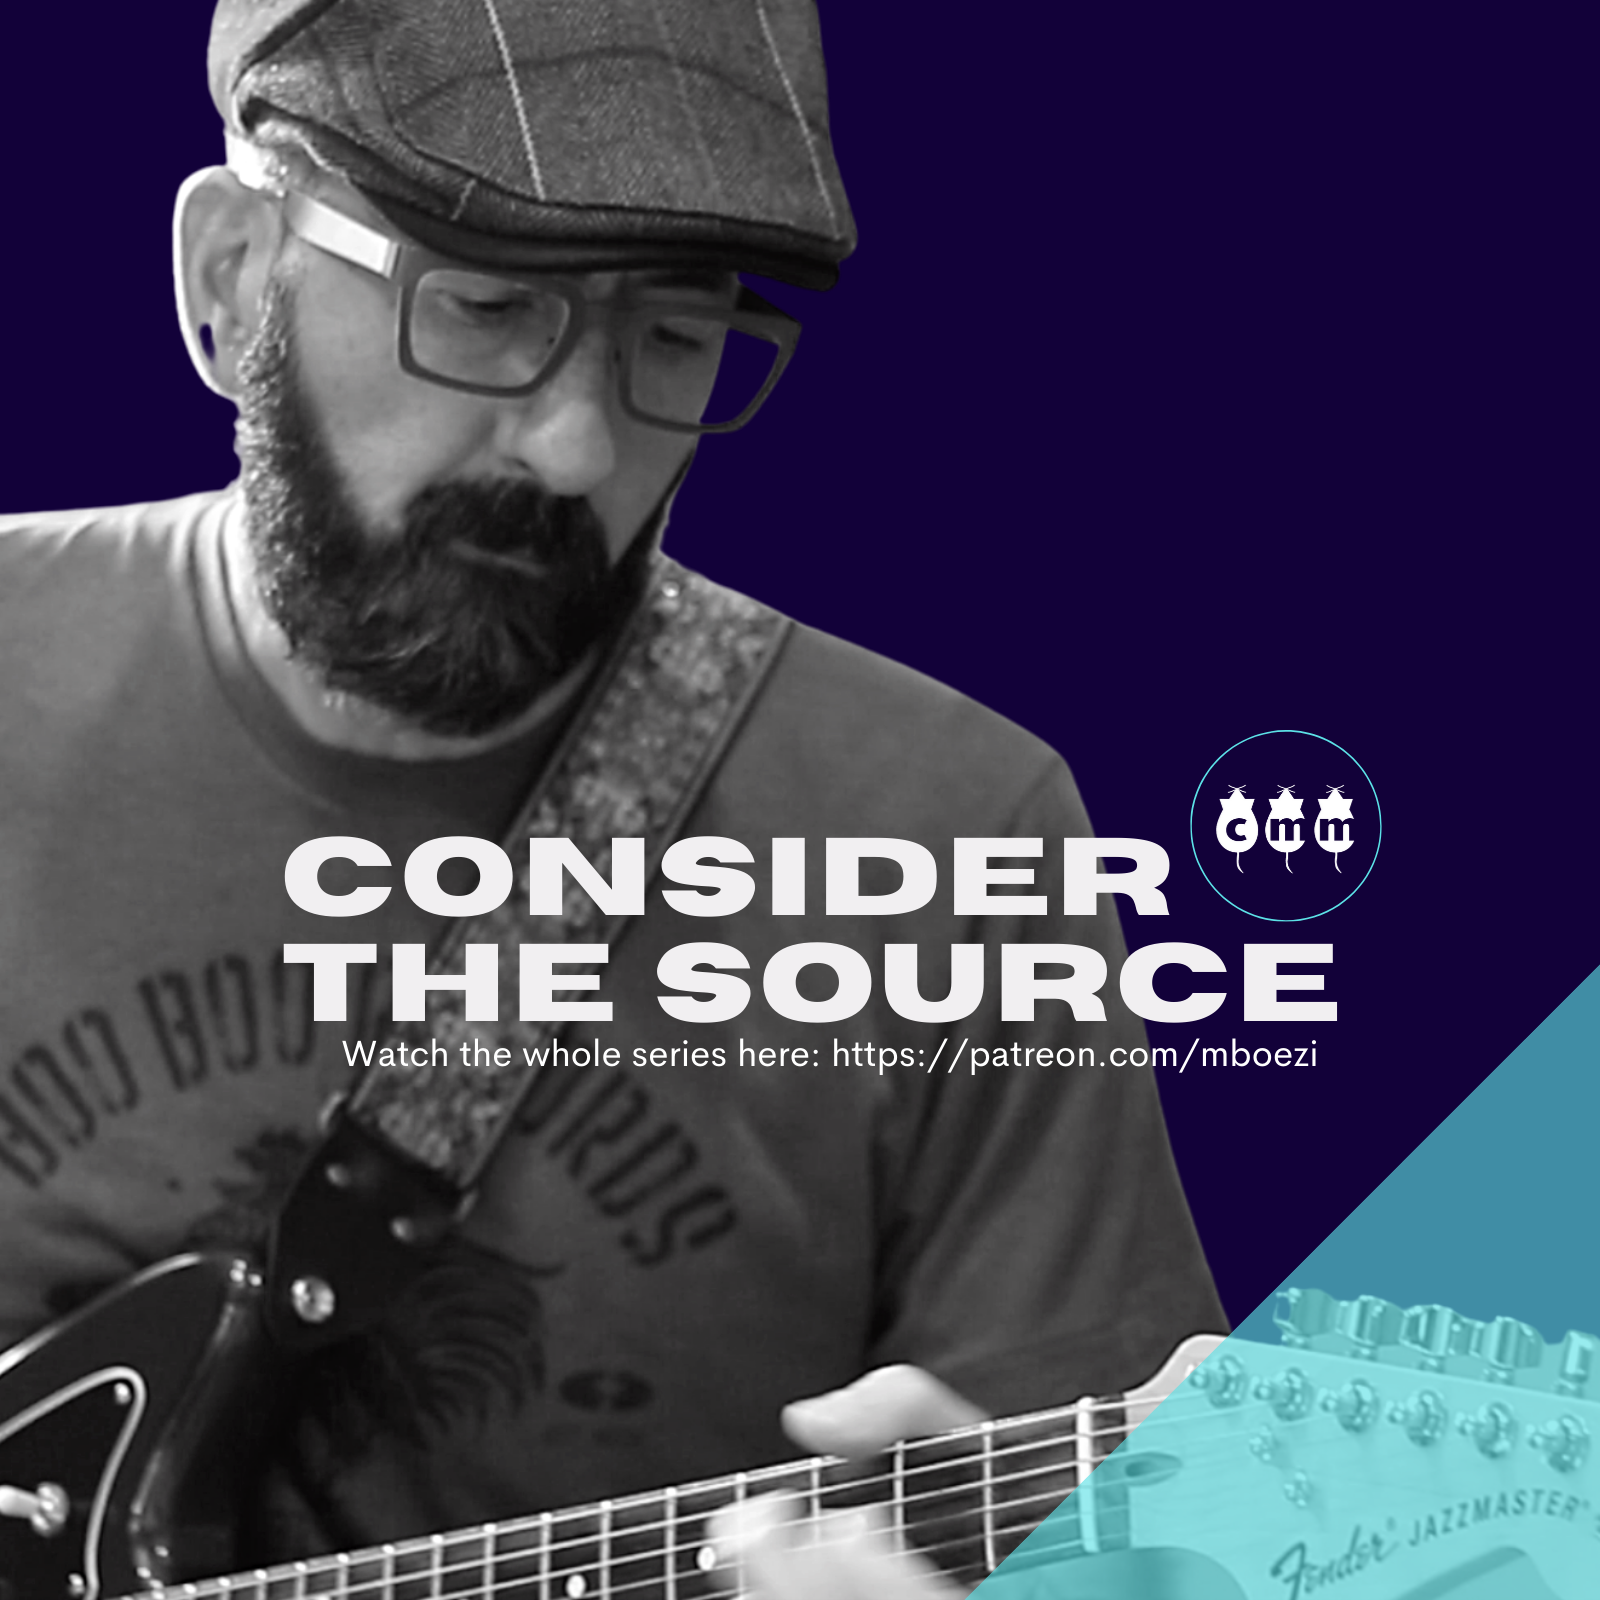 Consider the Source is an ongoing project that audits the way we consume, share, and produce media. This project includes live performances, selected workshops on the creative process, with early access and exclusive episodes.